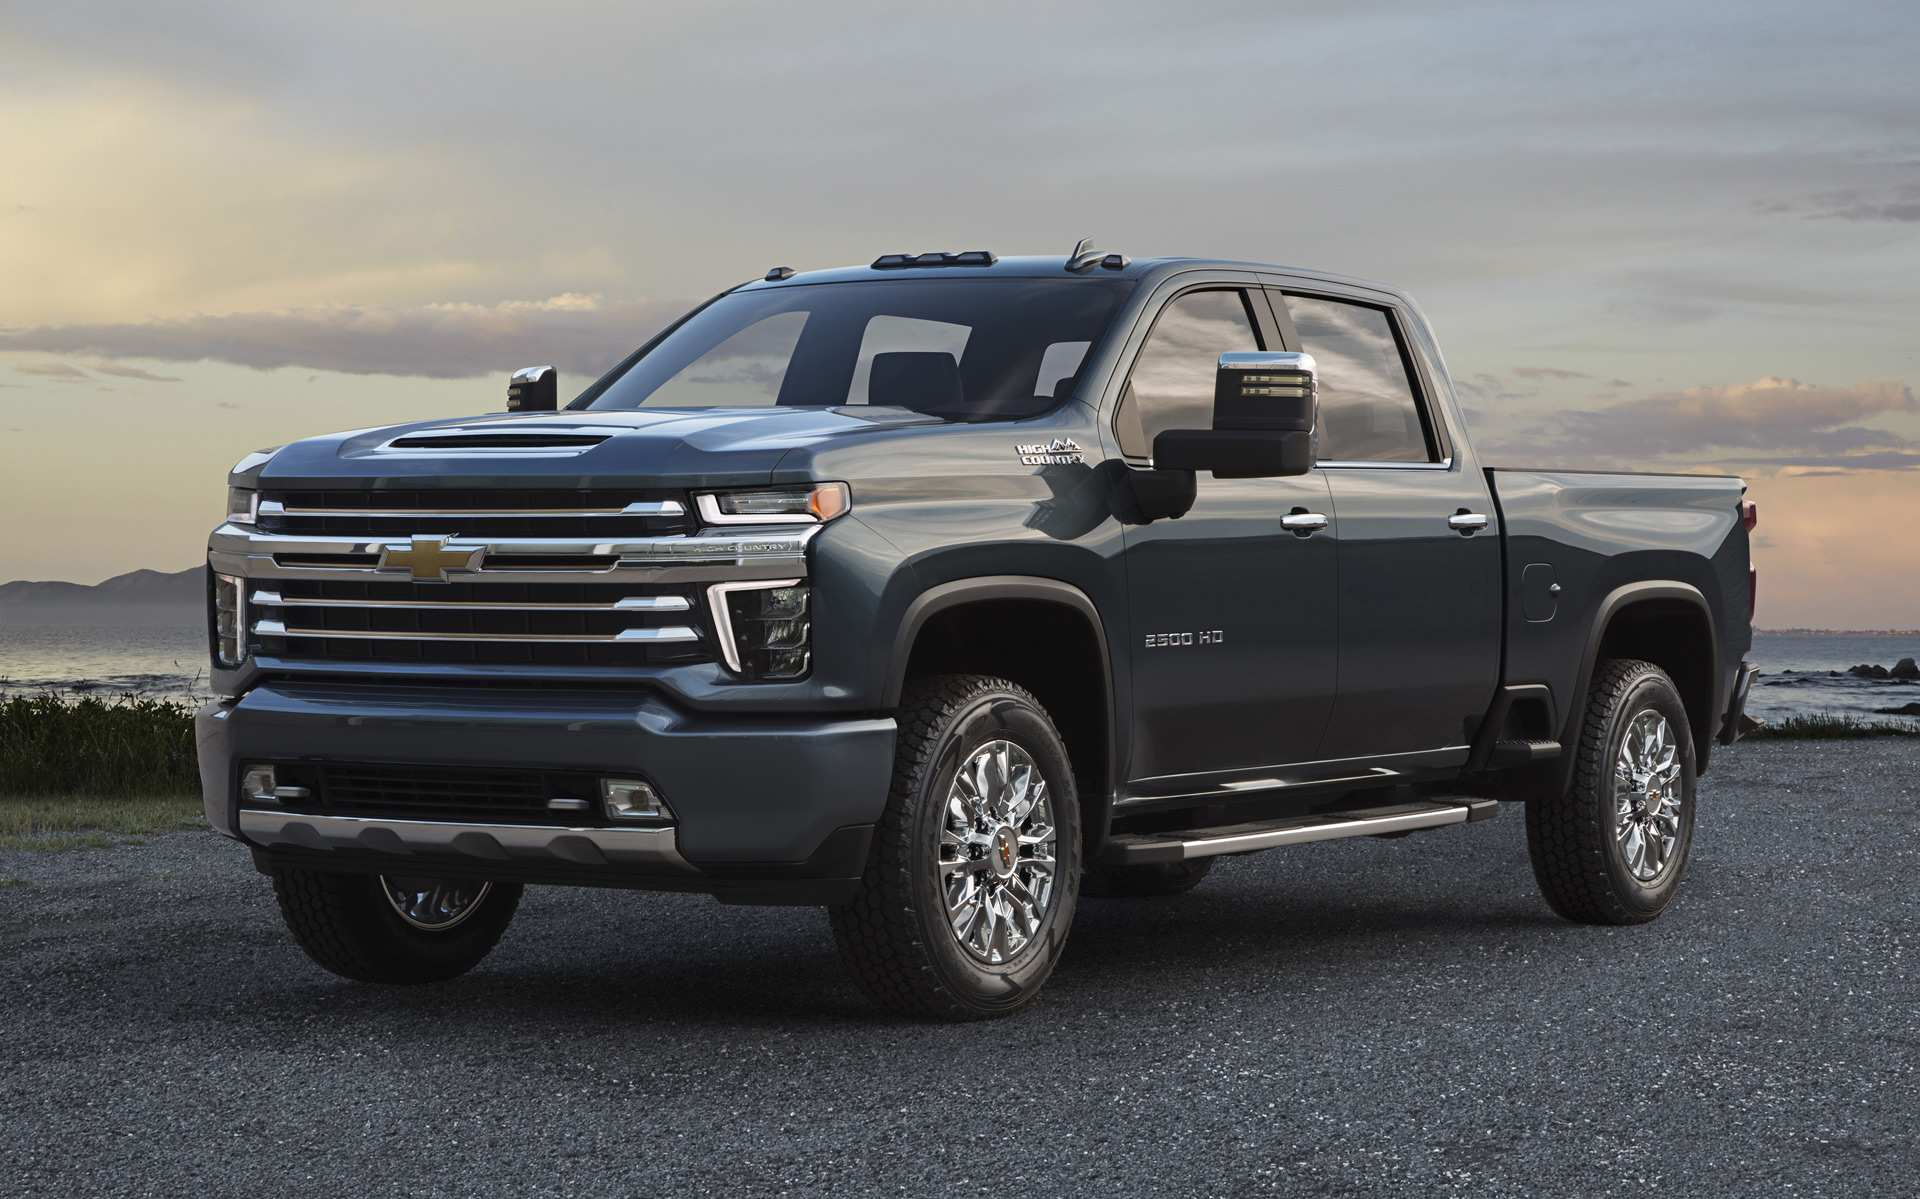 42 New Chevrolet Silverado 2020 Performance and New Engine